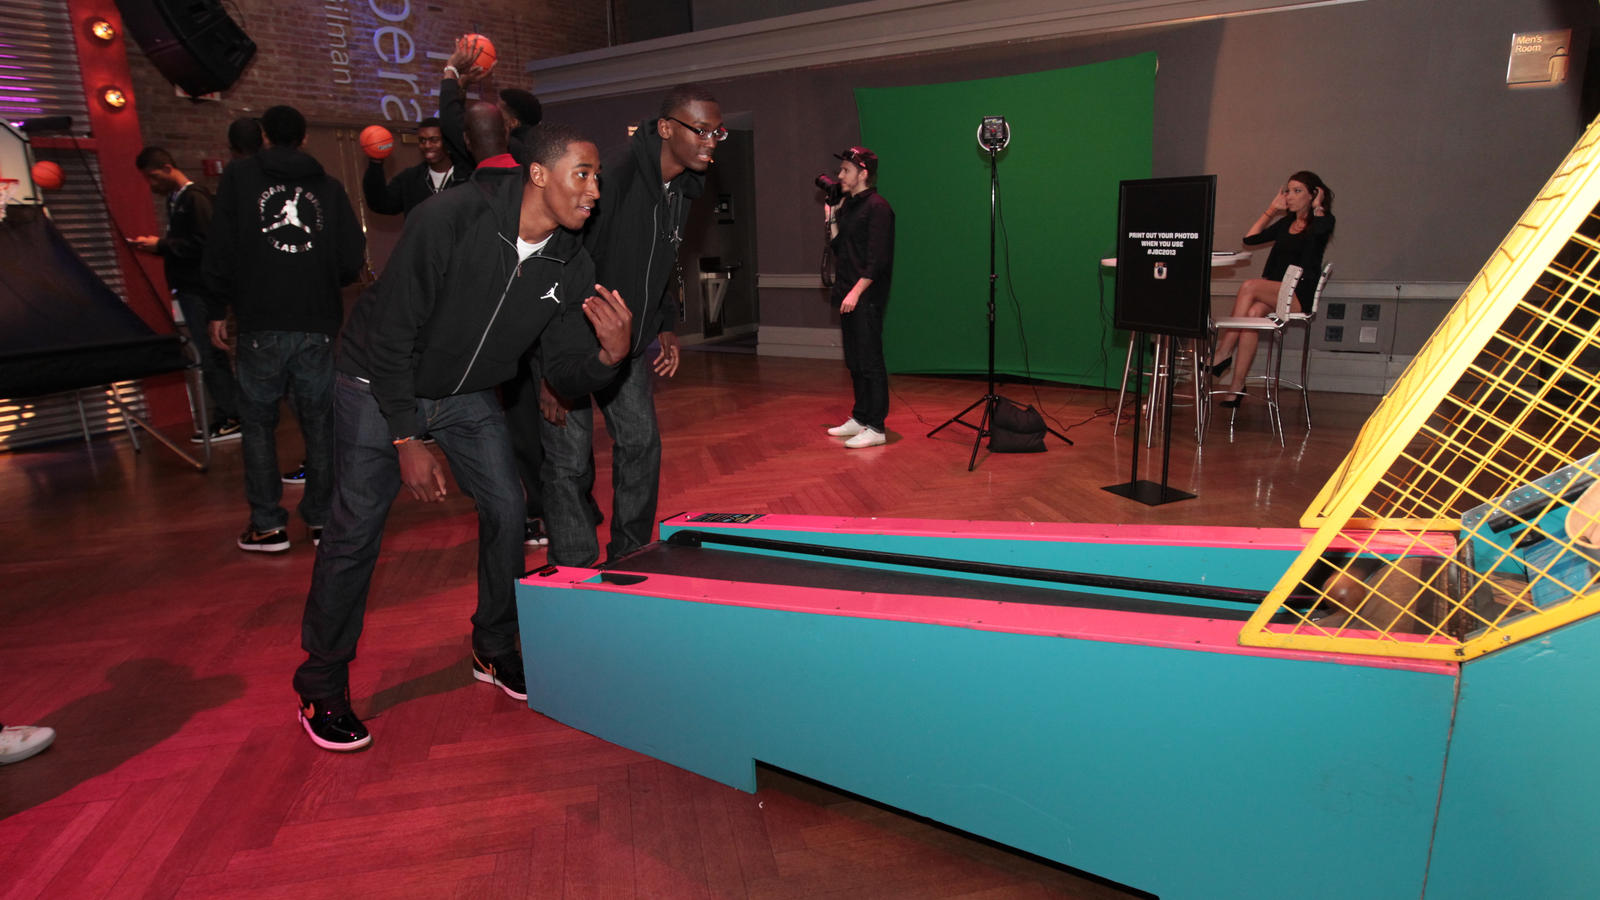 RONDAE JEFFERSON AND BOBBY PORTIS PLAYING SKEE BALL